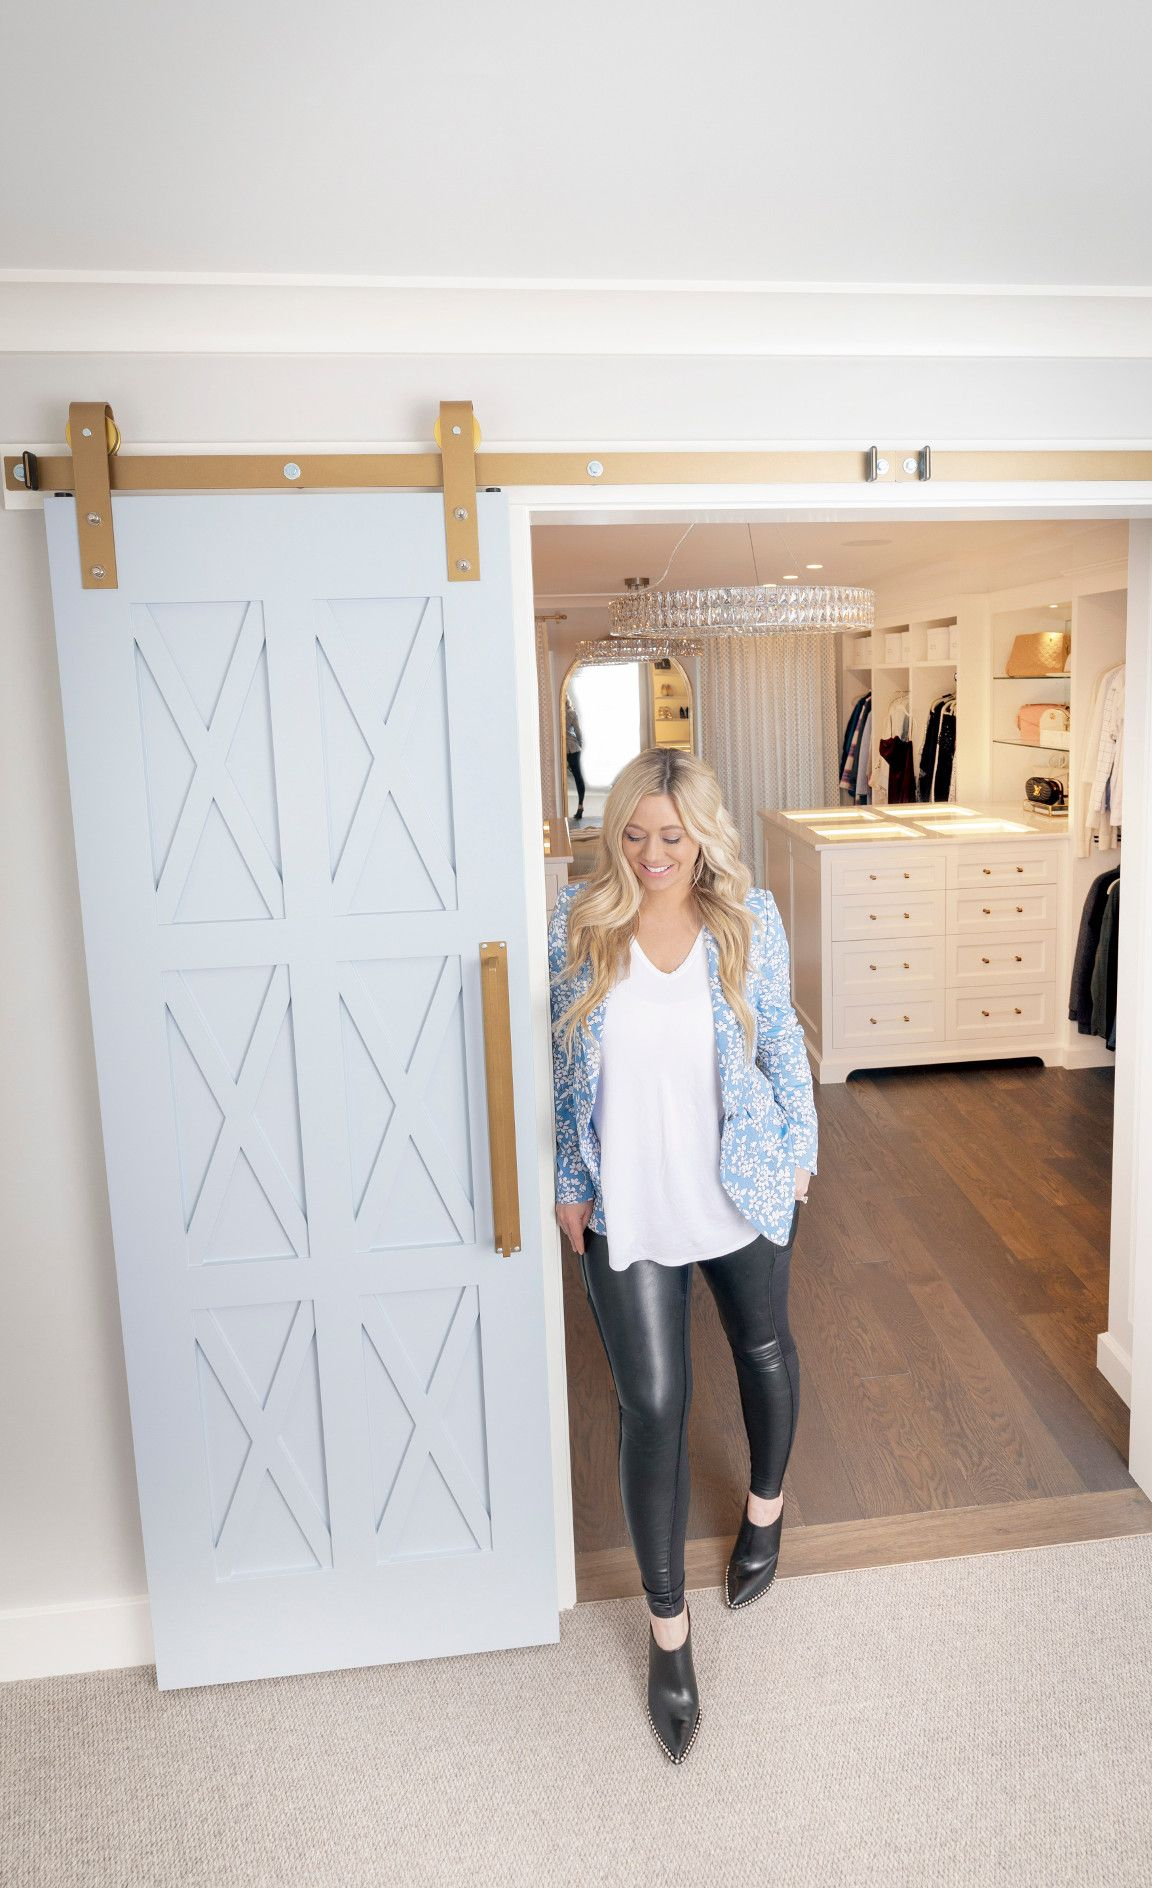 Carly Zucker pictured in the doorway to her closet featuring Cambria Delgatie.